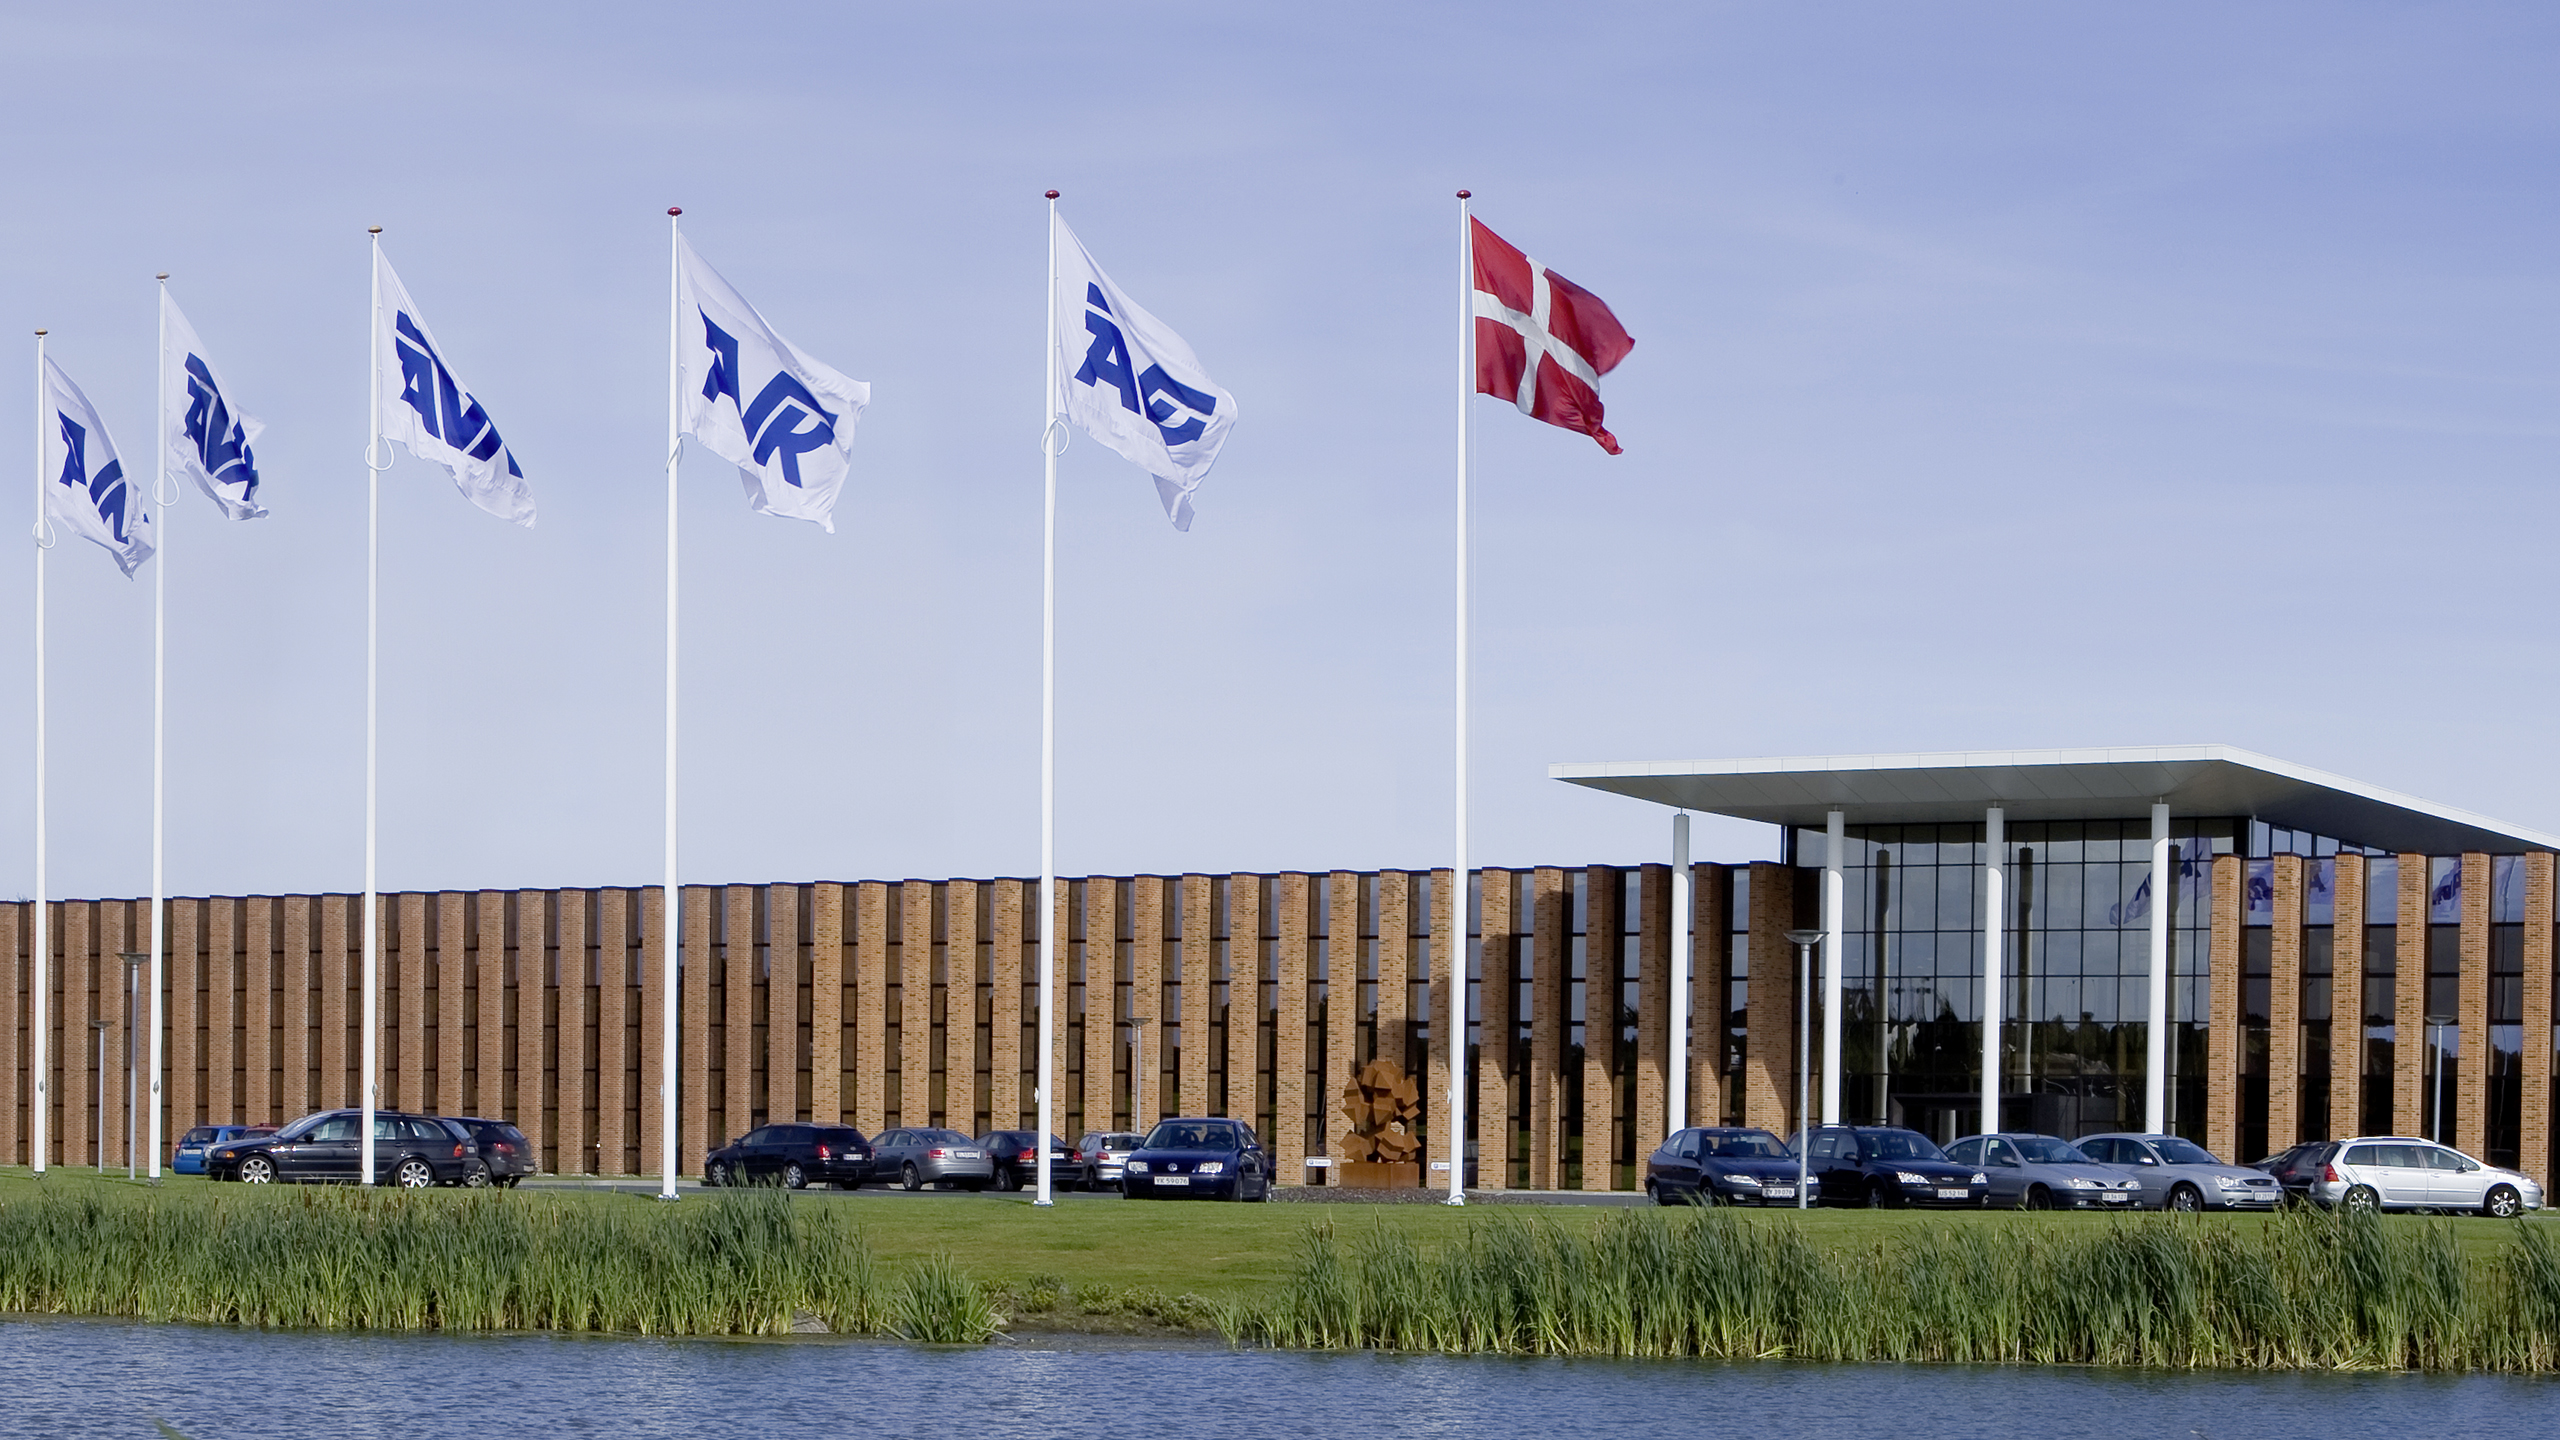 AVK headquater in Skovby Denmark